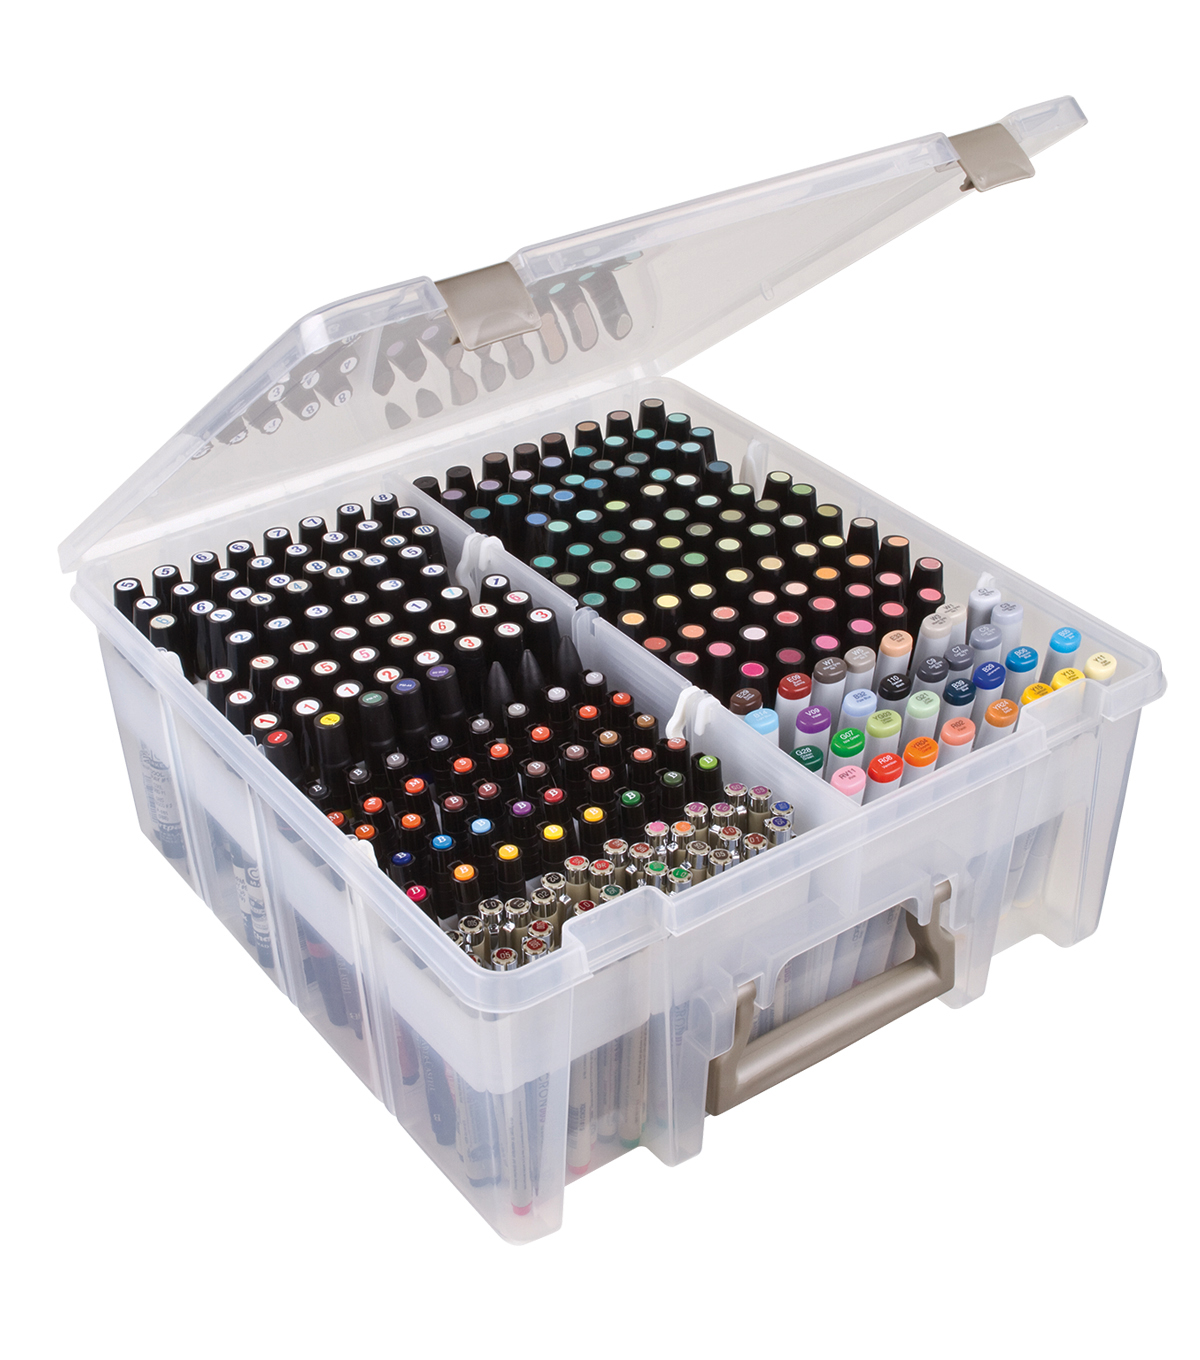 ArtBin Double Deep Box with Removable Dividers